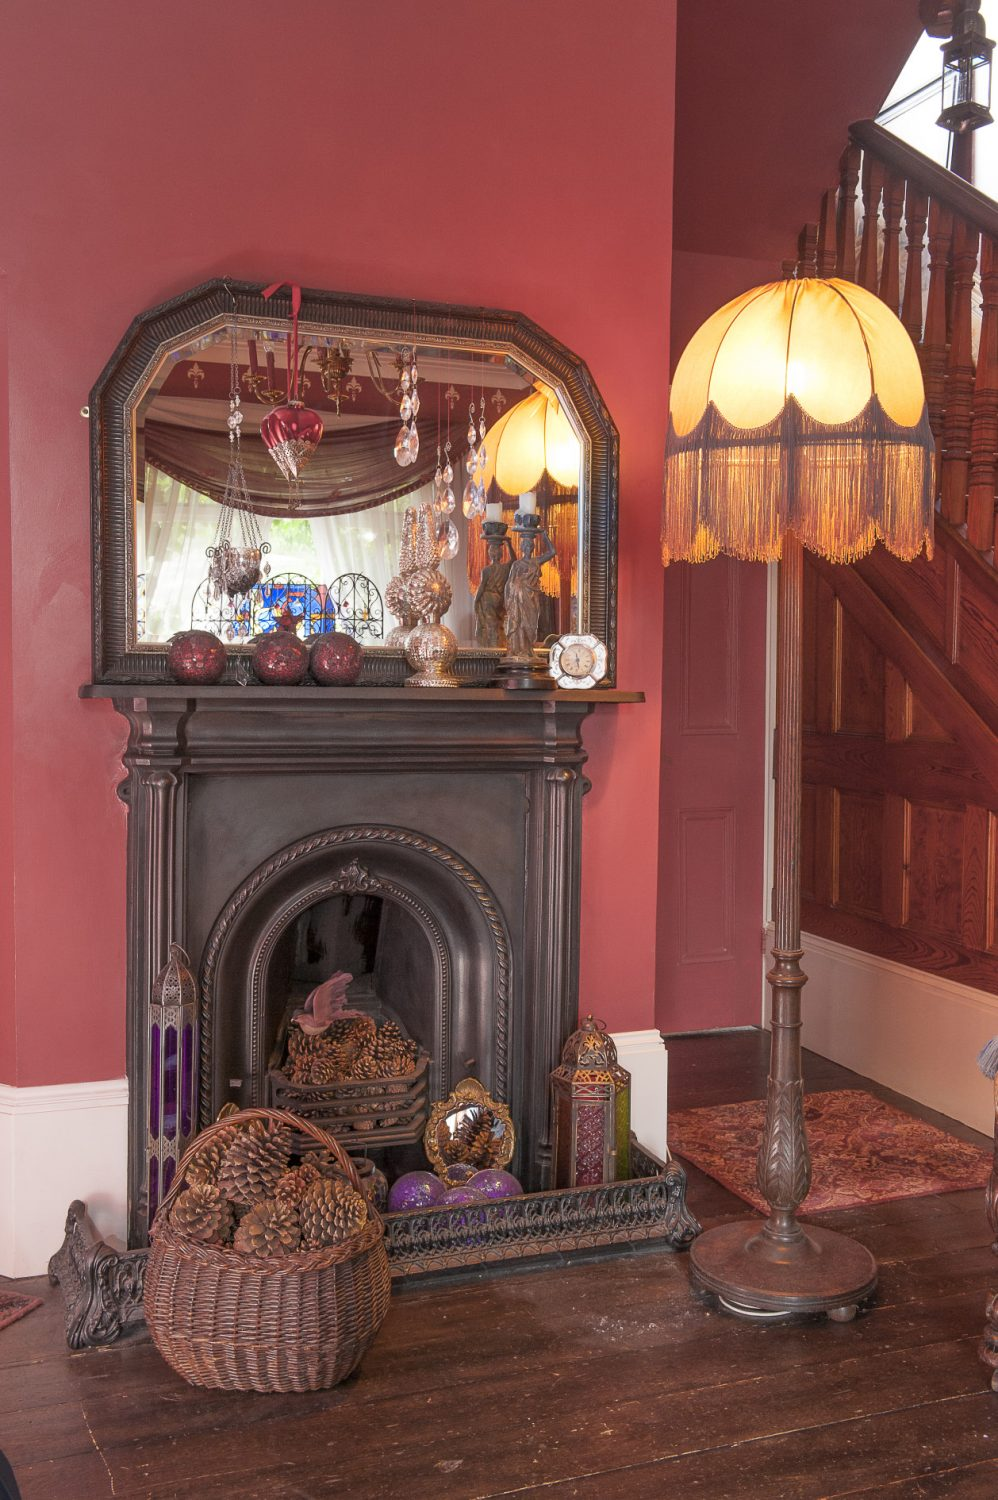 The dining room fireplace is surrounded by oriental and Moroccan influences, the rich tones highlighted by glowing Venetian glass